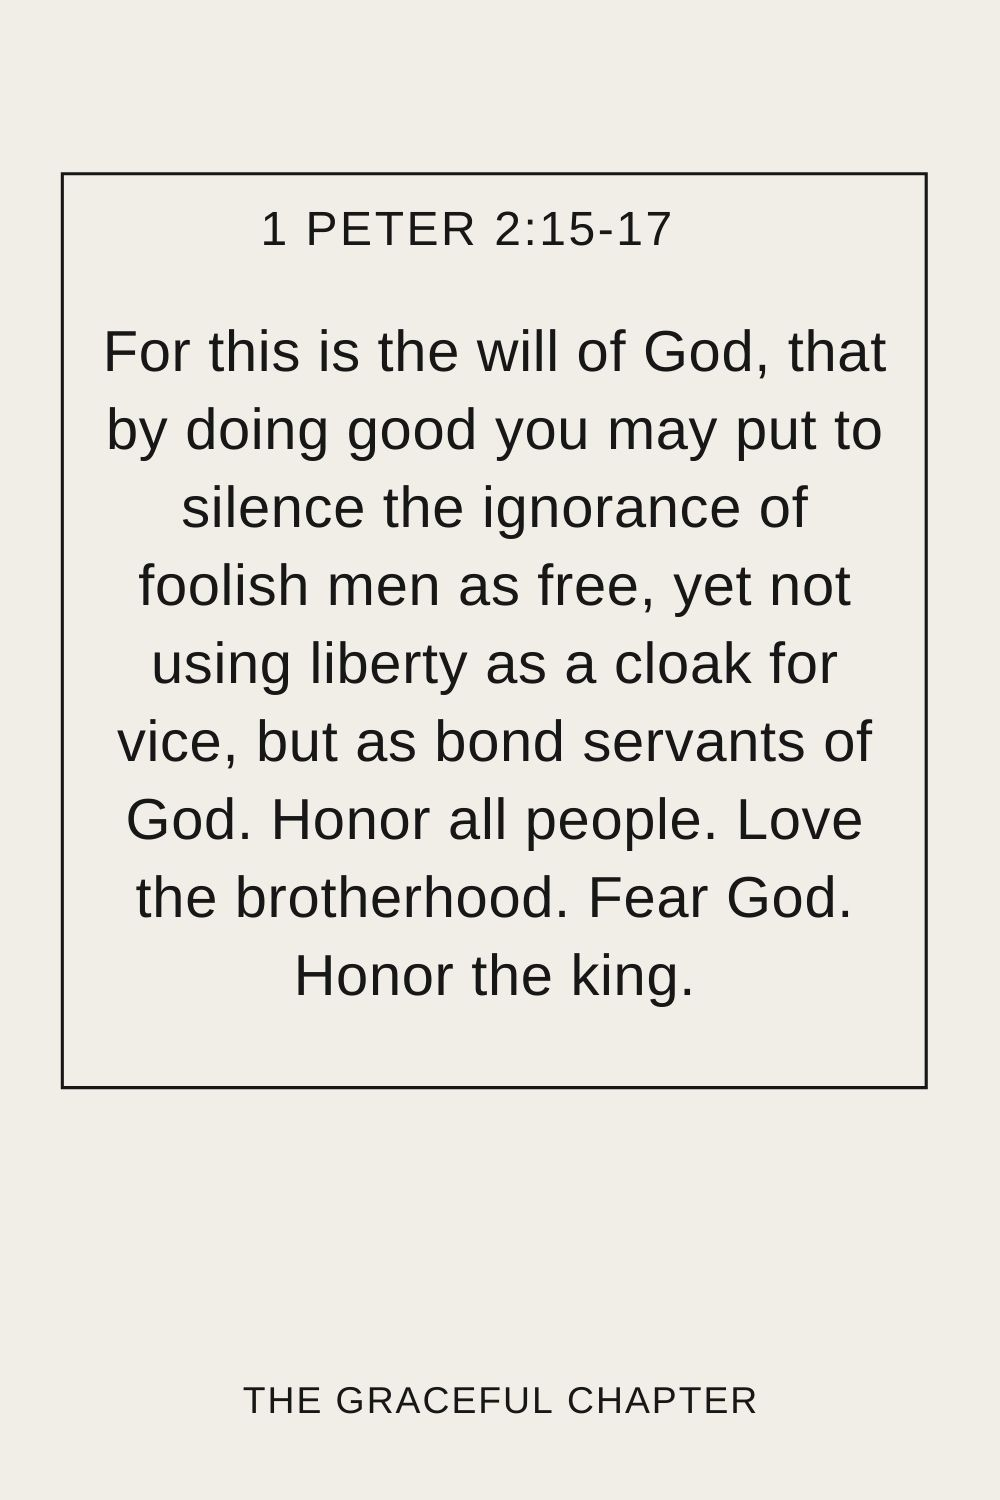 For this is the will of God, that by doing good you may put to silence the ignorance of foolish men as free, yet not using liberty as a cloak for vice, but as bond servants of God. Honor all people. Love the brotherhood. Fear God. Honor the king. 1 Peter 2:15-17